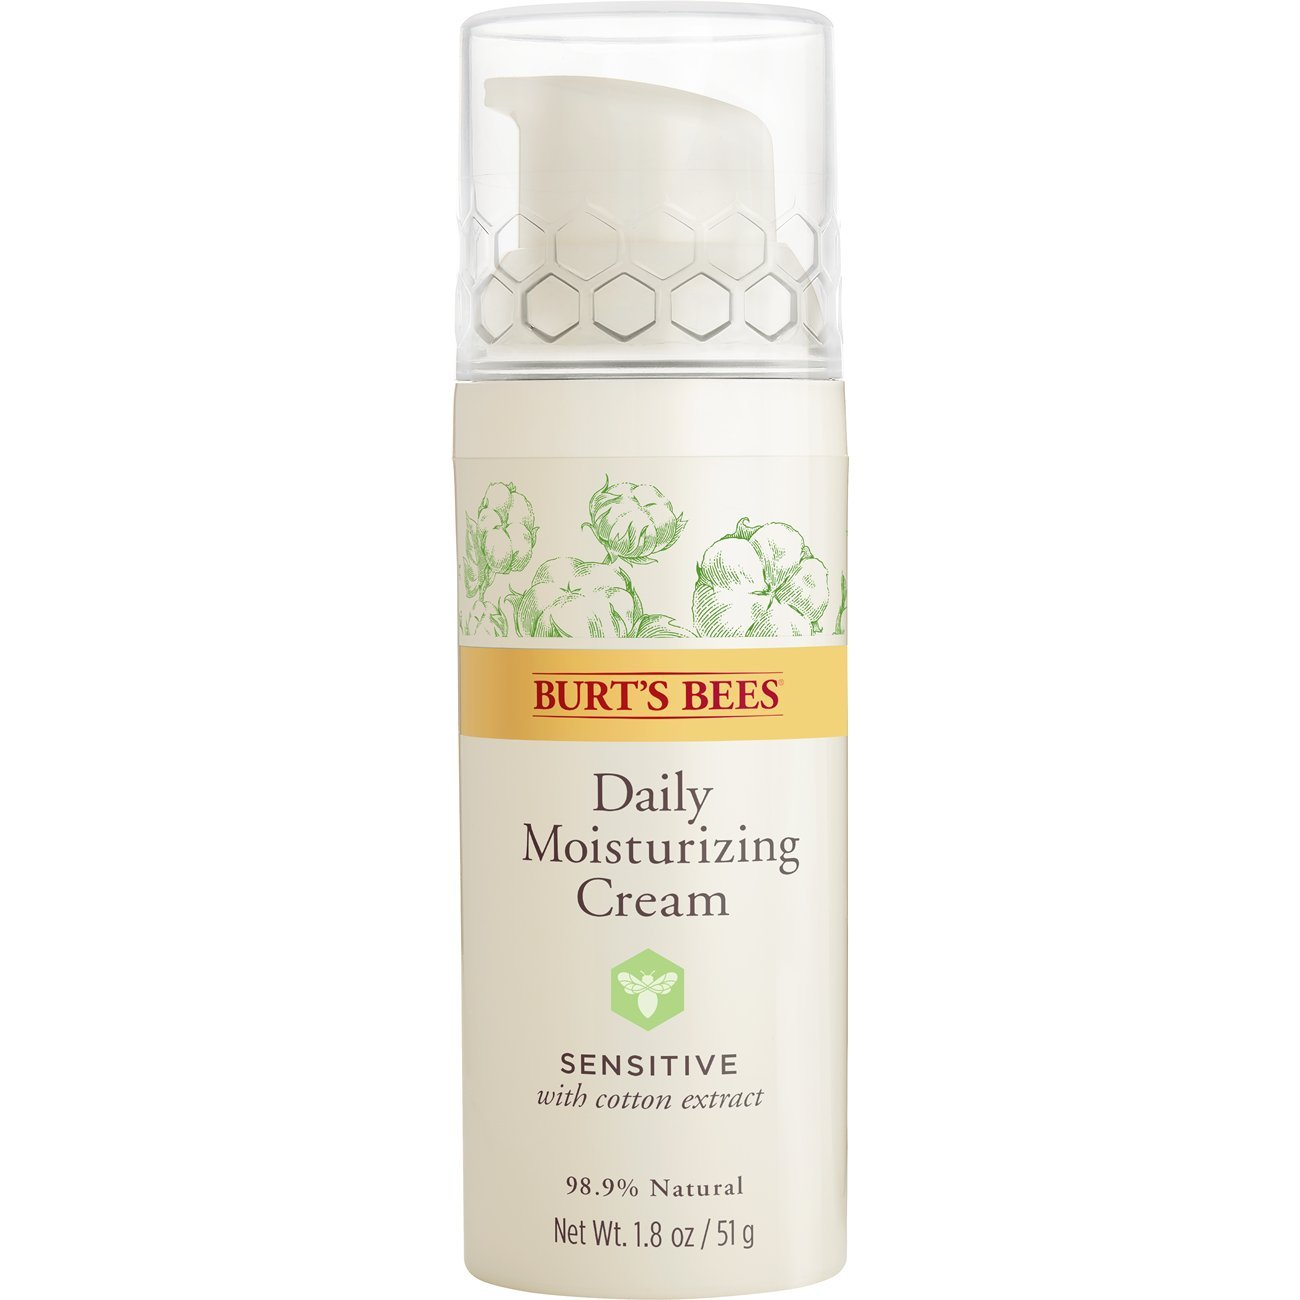 Burt's Bees Daily Face Moisturizer for Sensitive Skin, 1.8 Ounces by Burt's Bees (Image #8)